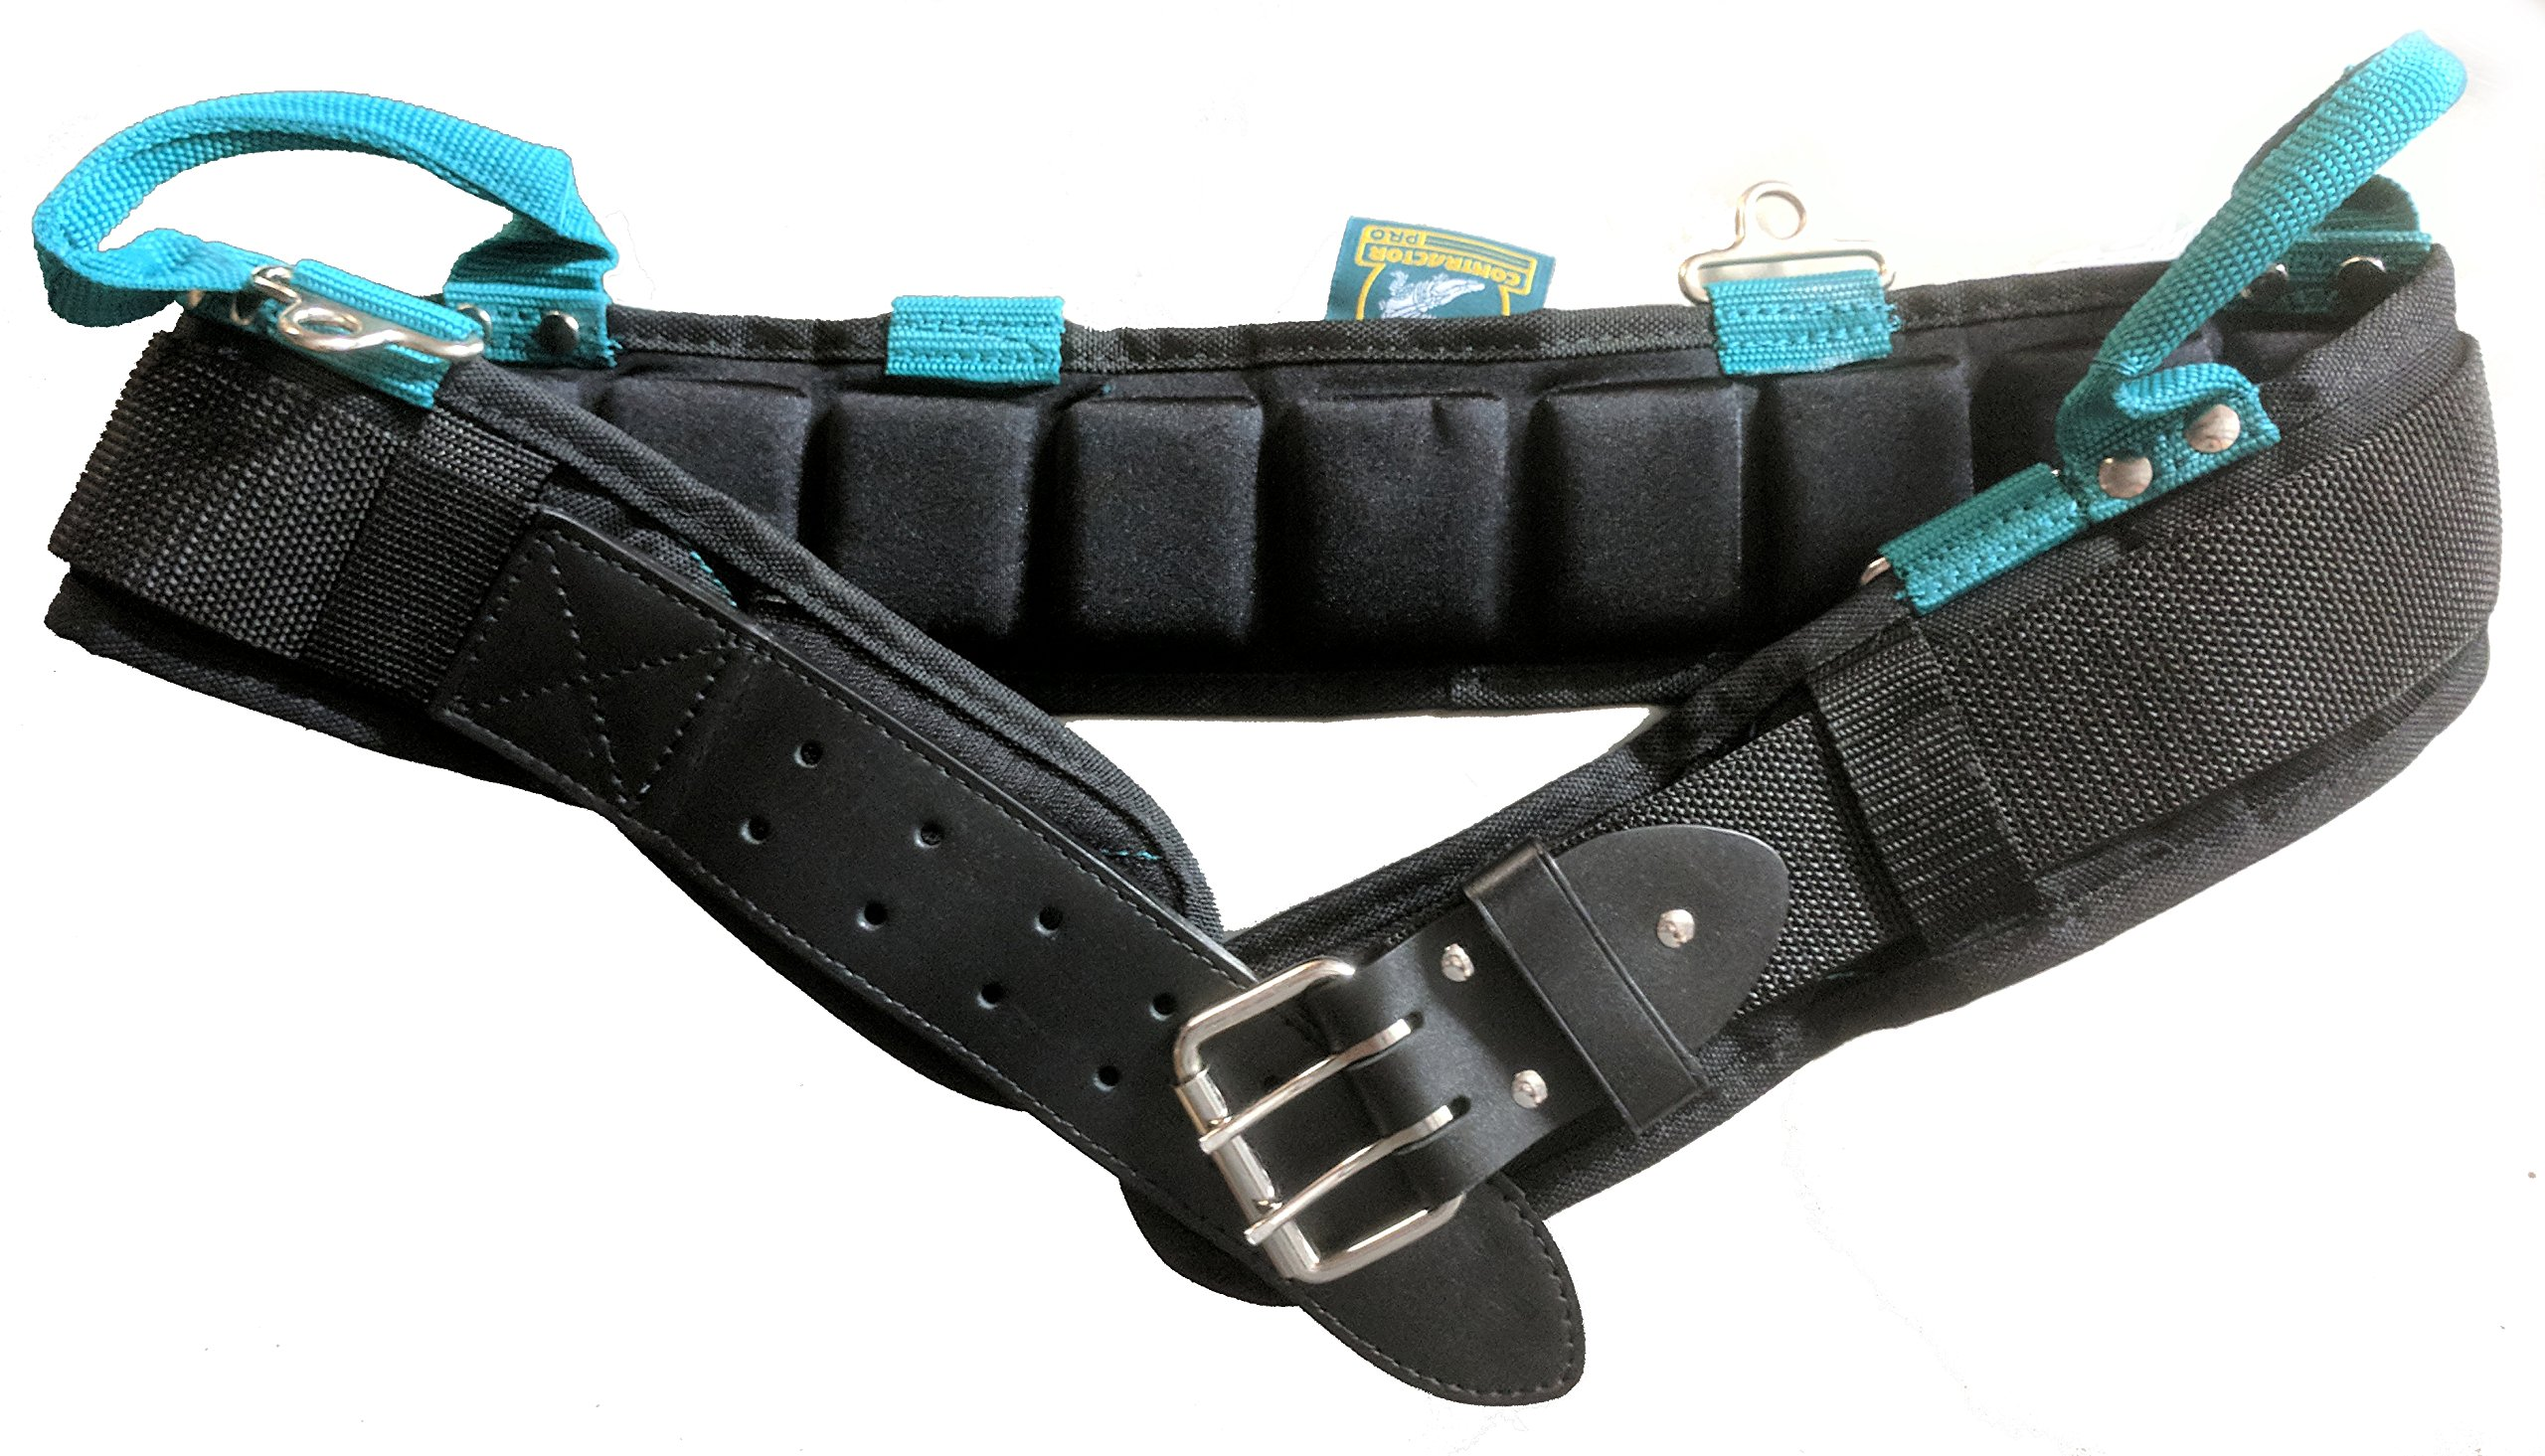 Gatorback Contractor Pro Professional Ventilated Comfort Belt Tool Pouch Ready. Ventilated Air Channels Designed for Comfort and Less Sweating (3XL 50-54 Inch Waist)